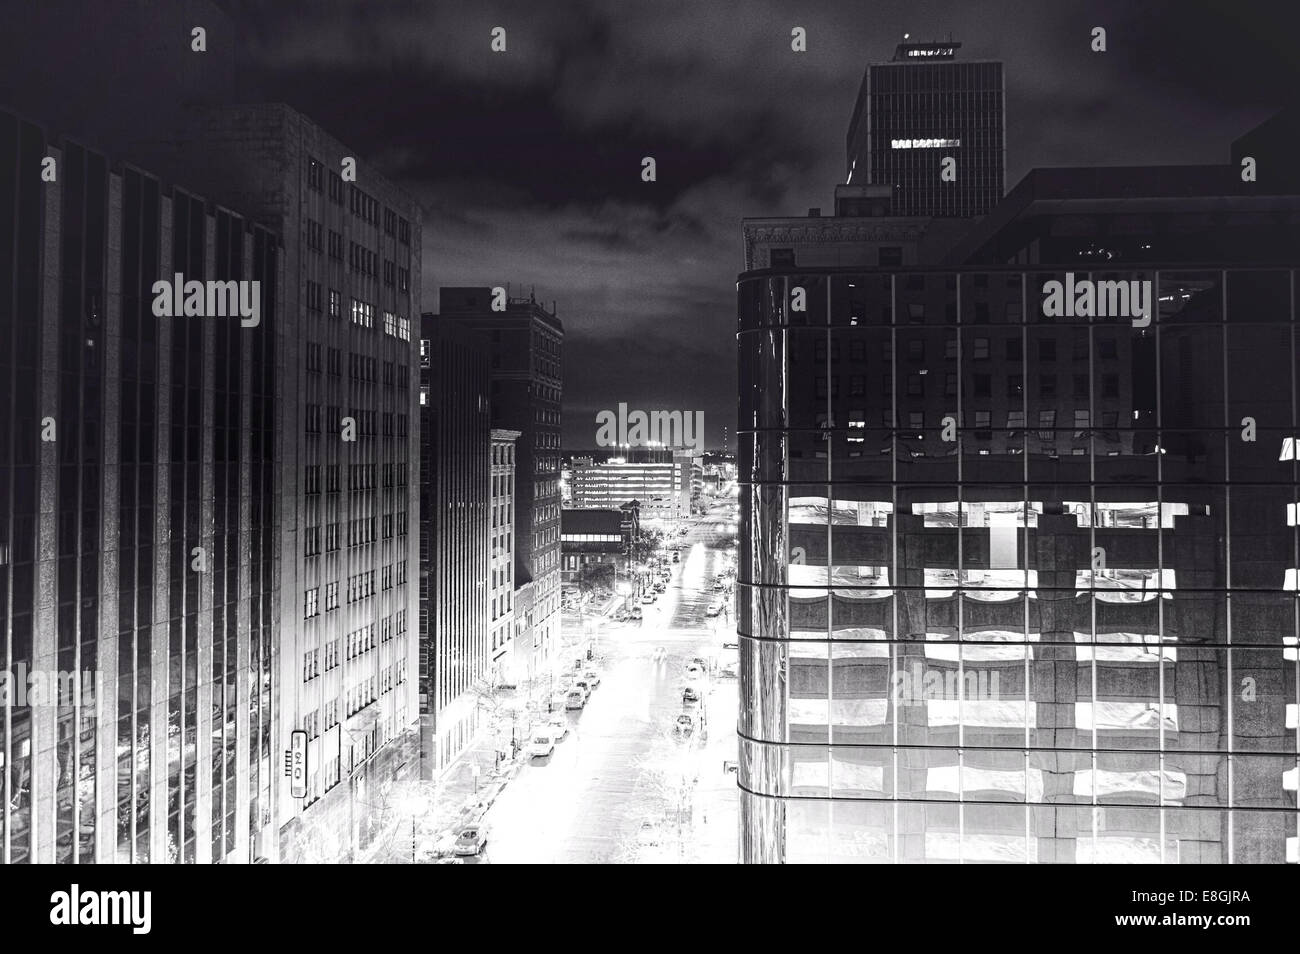 Cityscape at night, Indianapolis, Indiana, America, USA - Stock Image